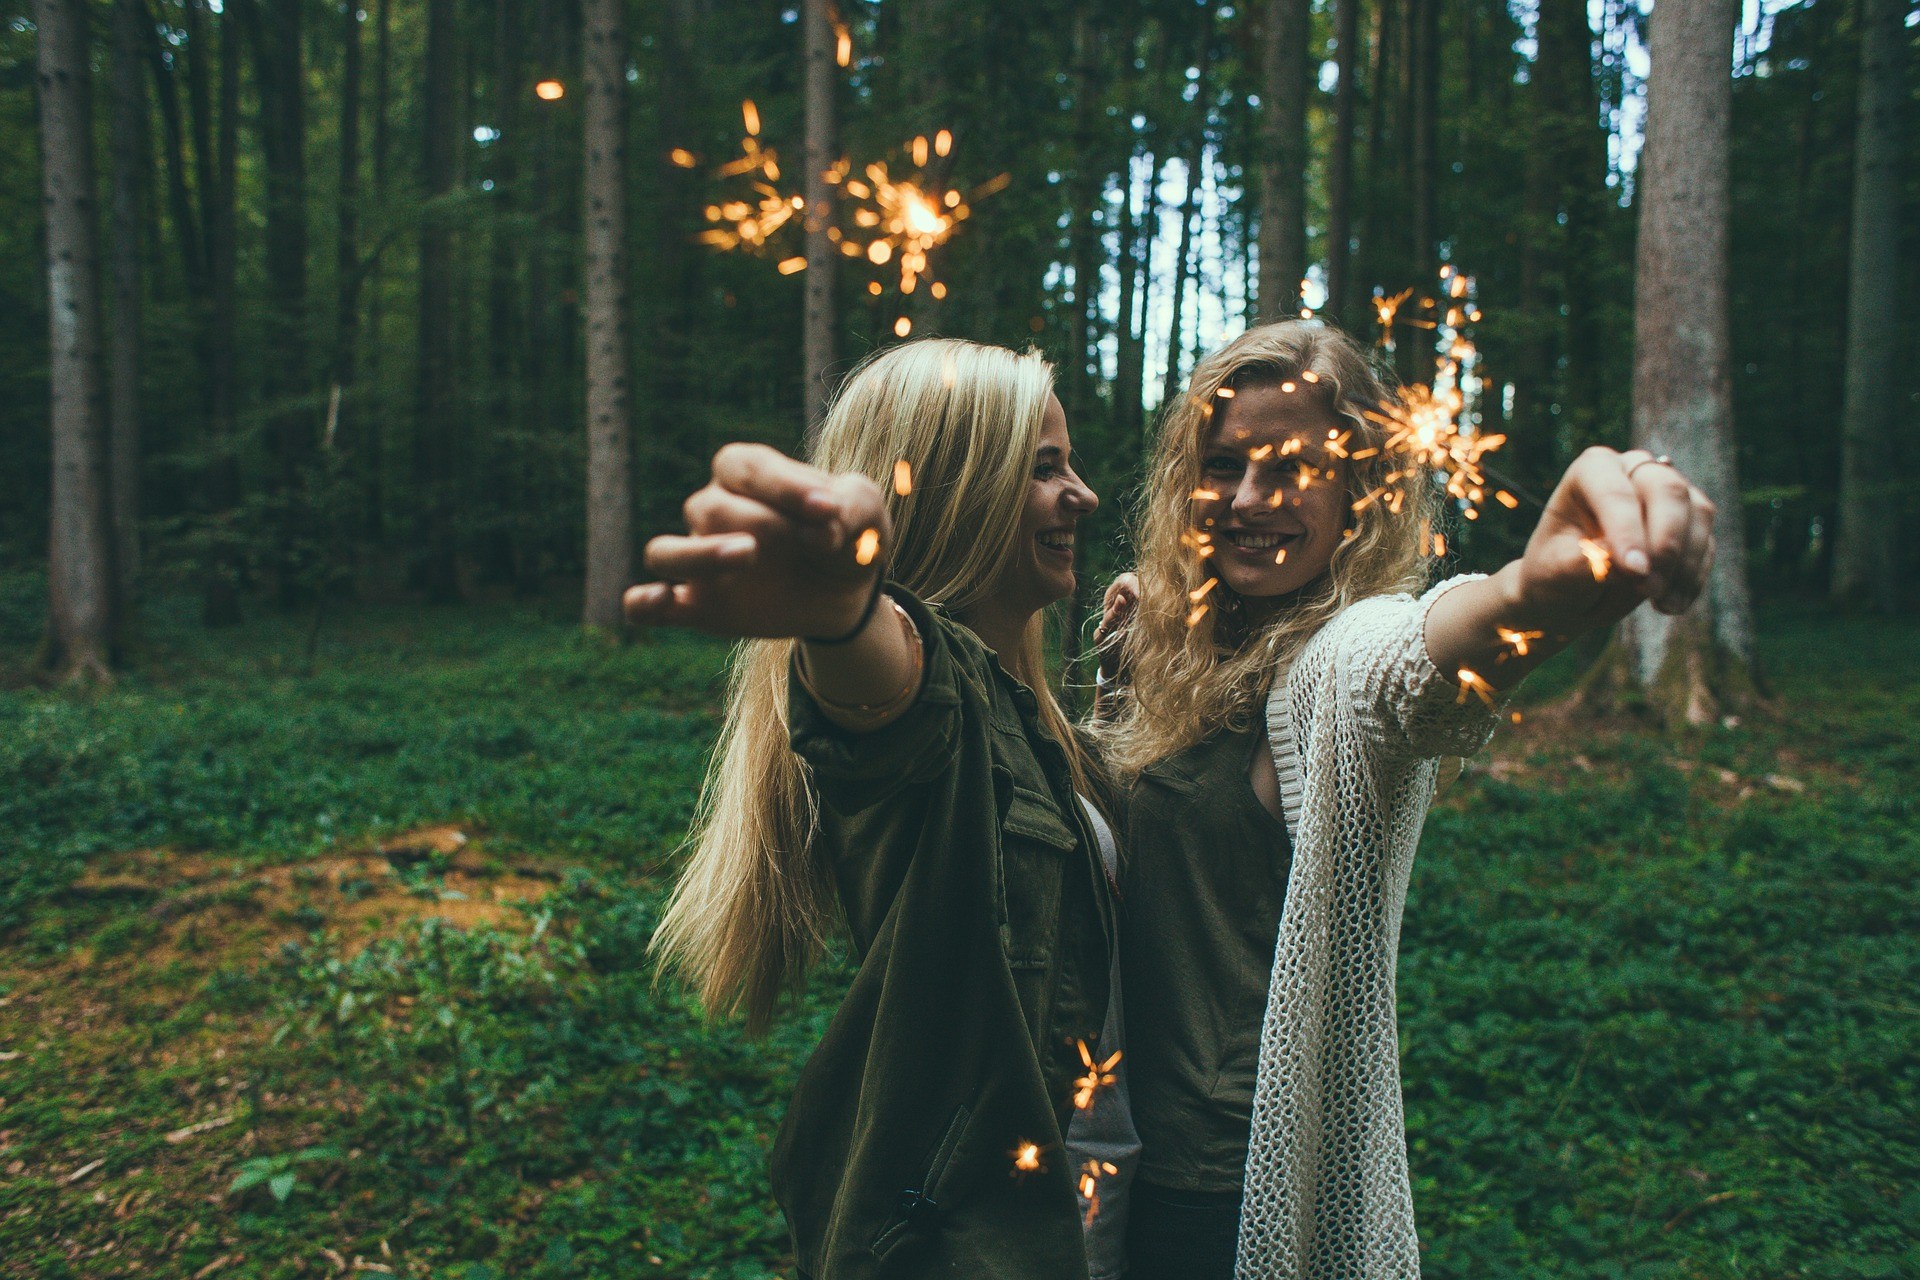 7 Tips for Making New Friends